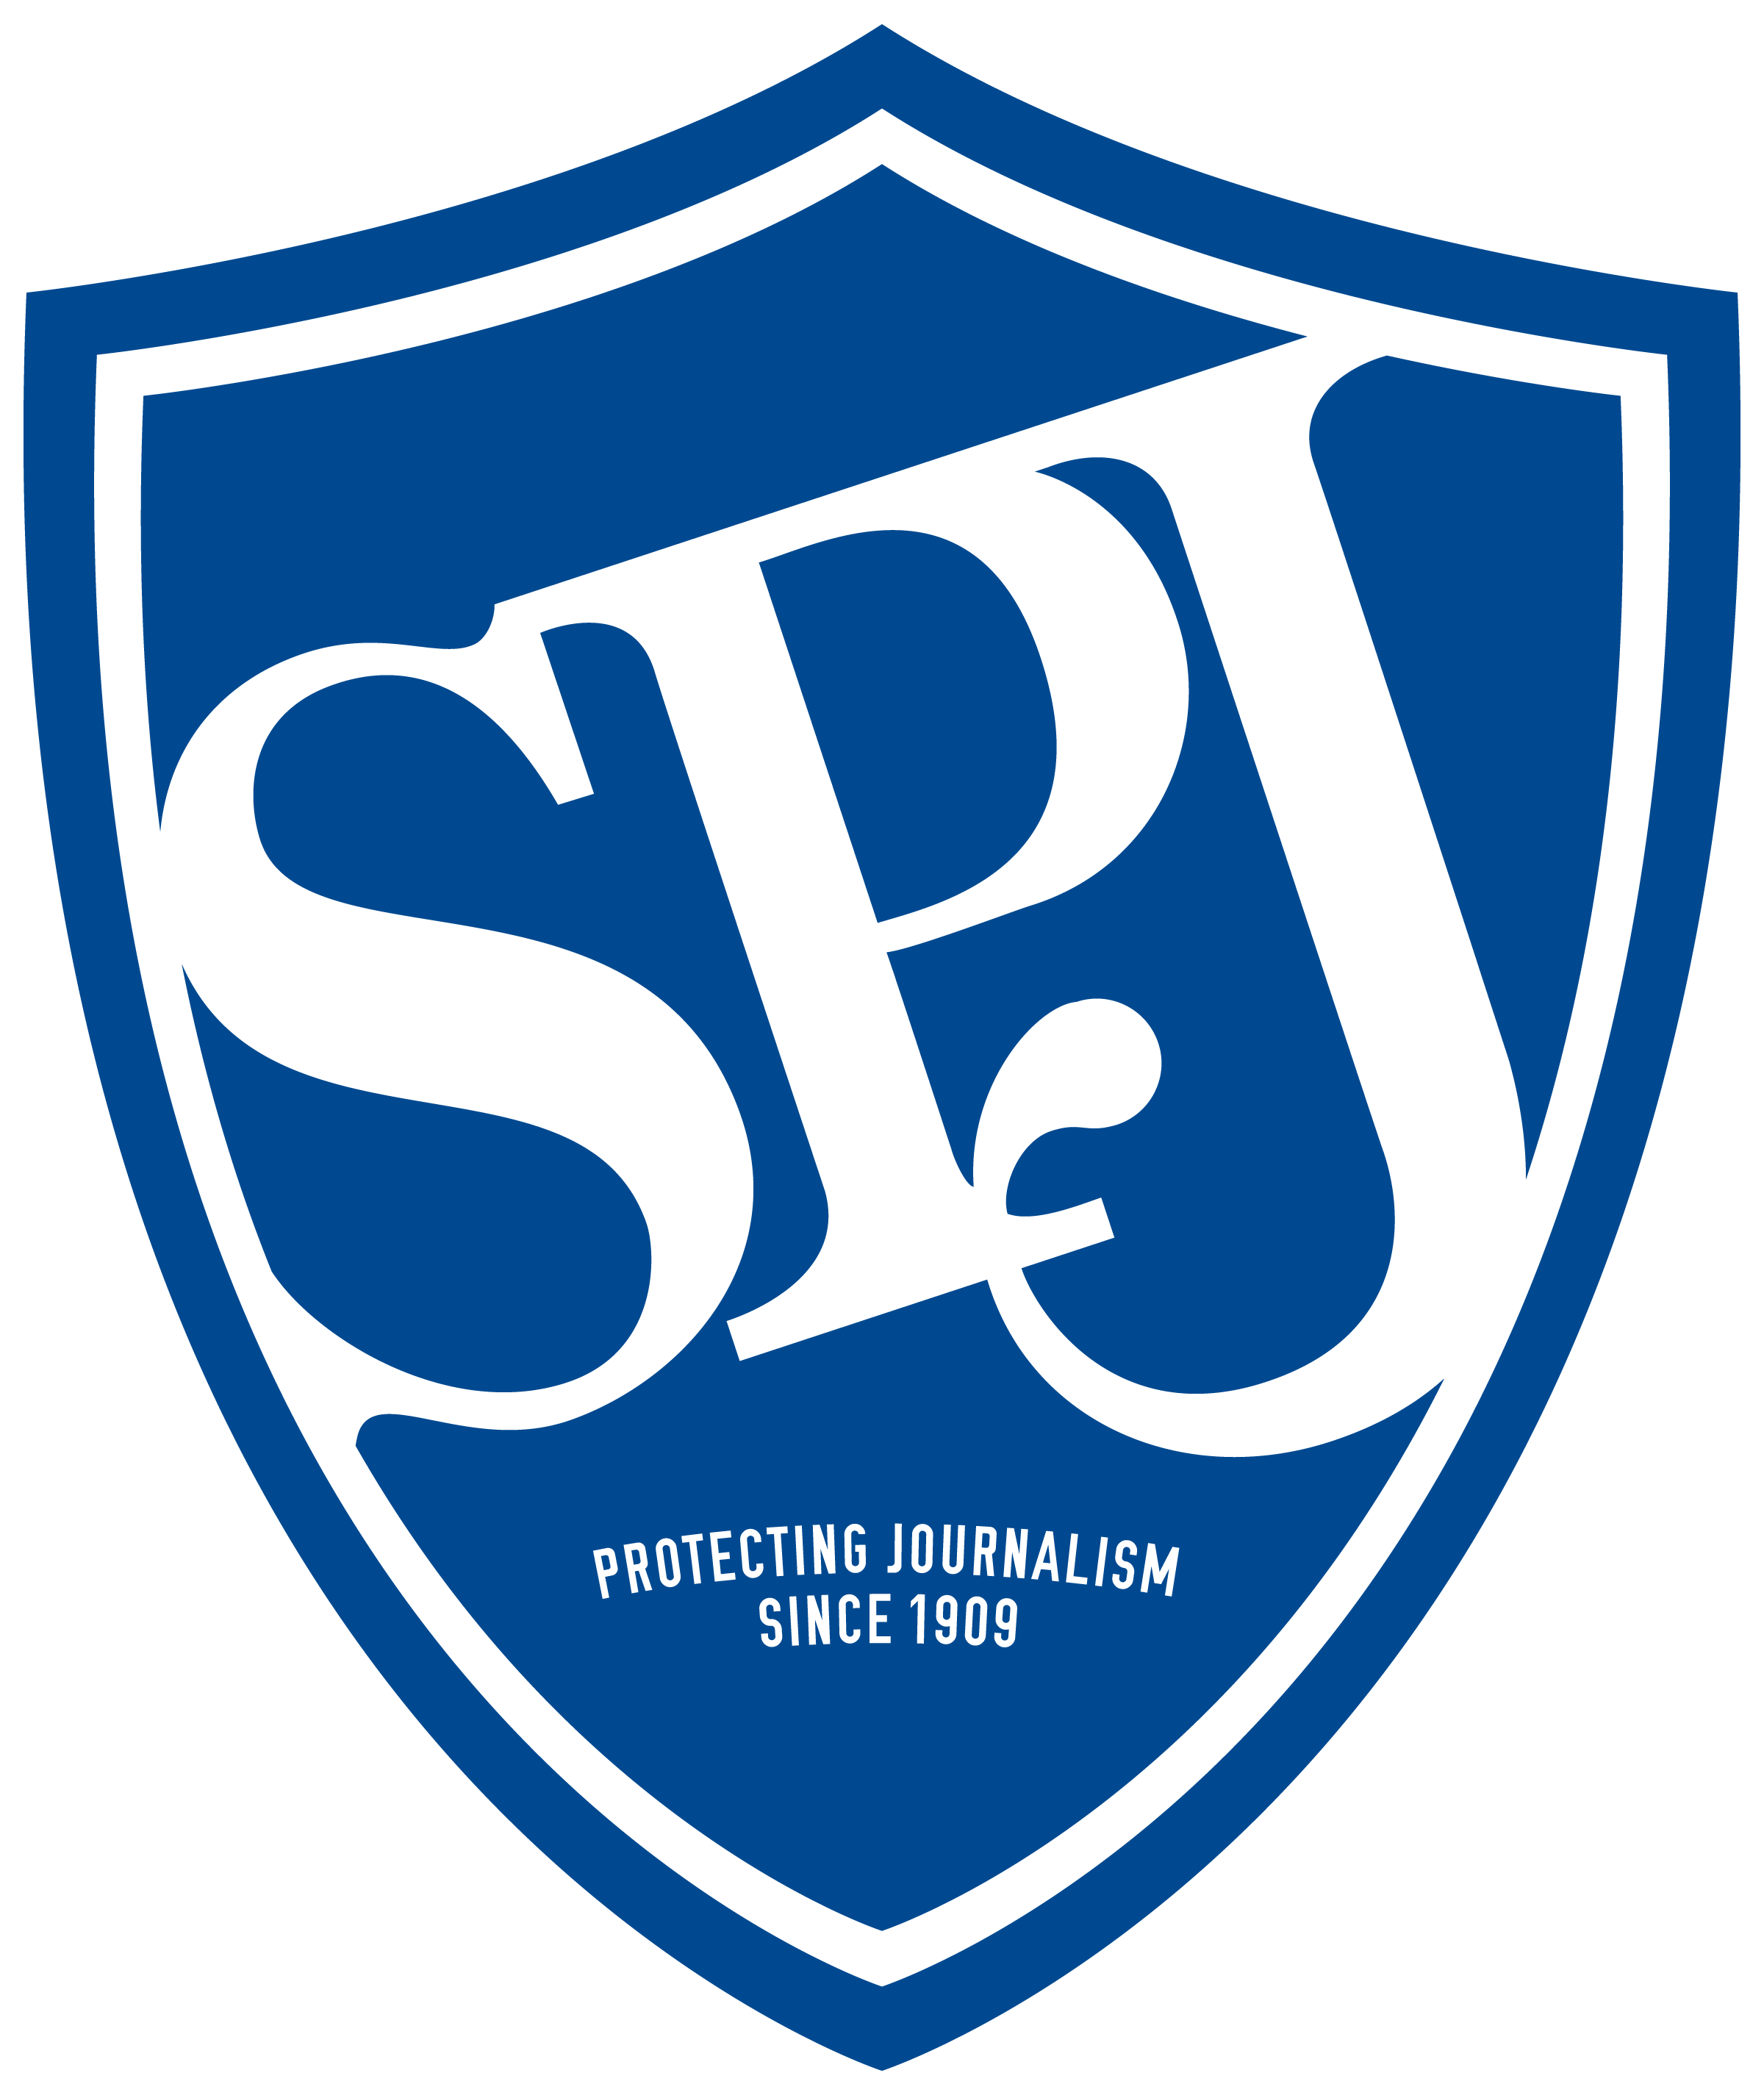 spj history and timeline society of professional journalists new code of ethics adopted